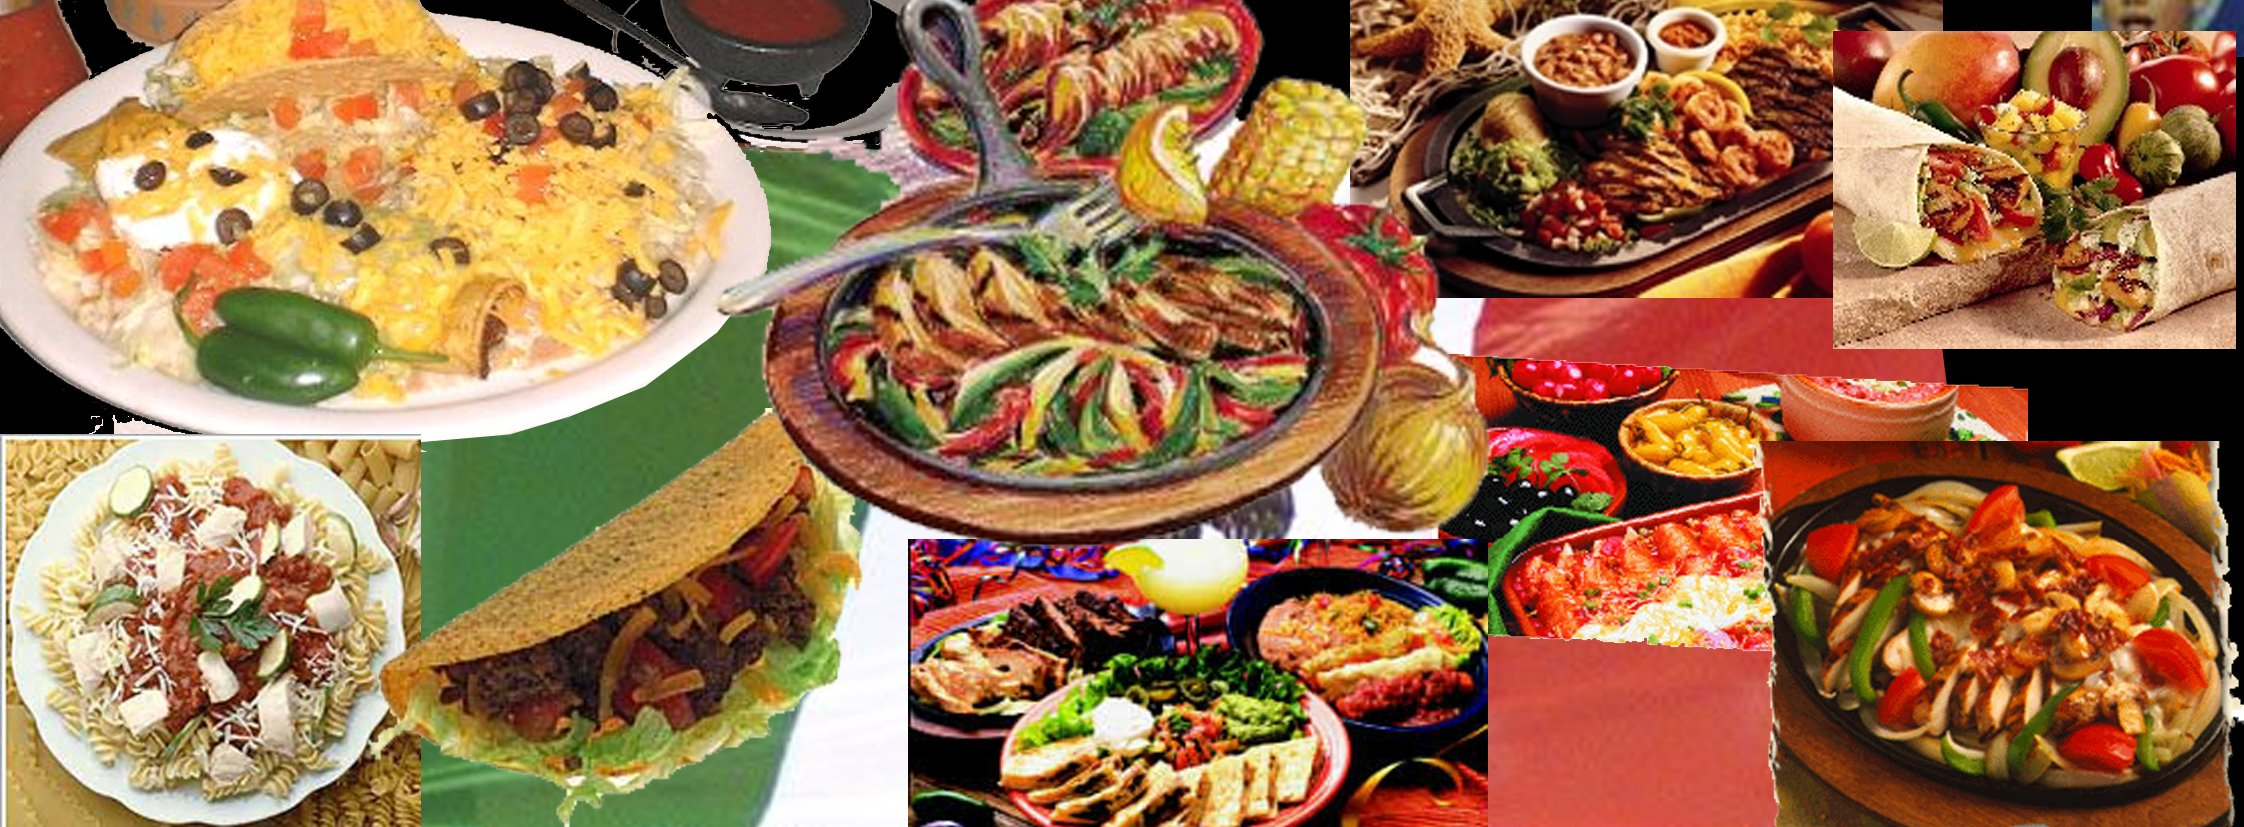 3d desktop wallpaper mexican food - photo #5